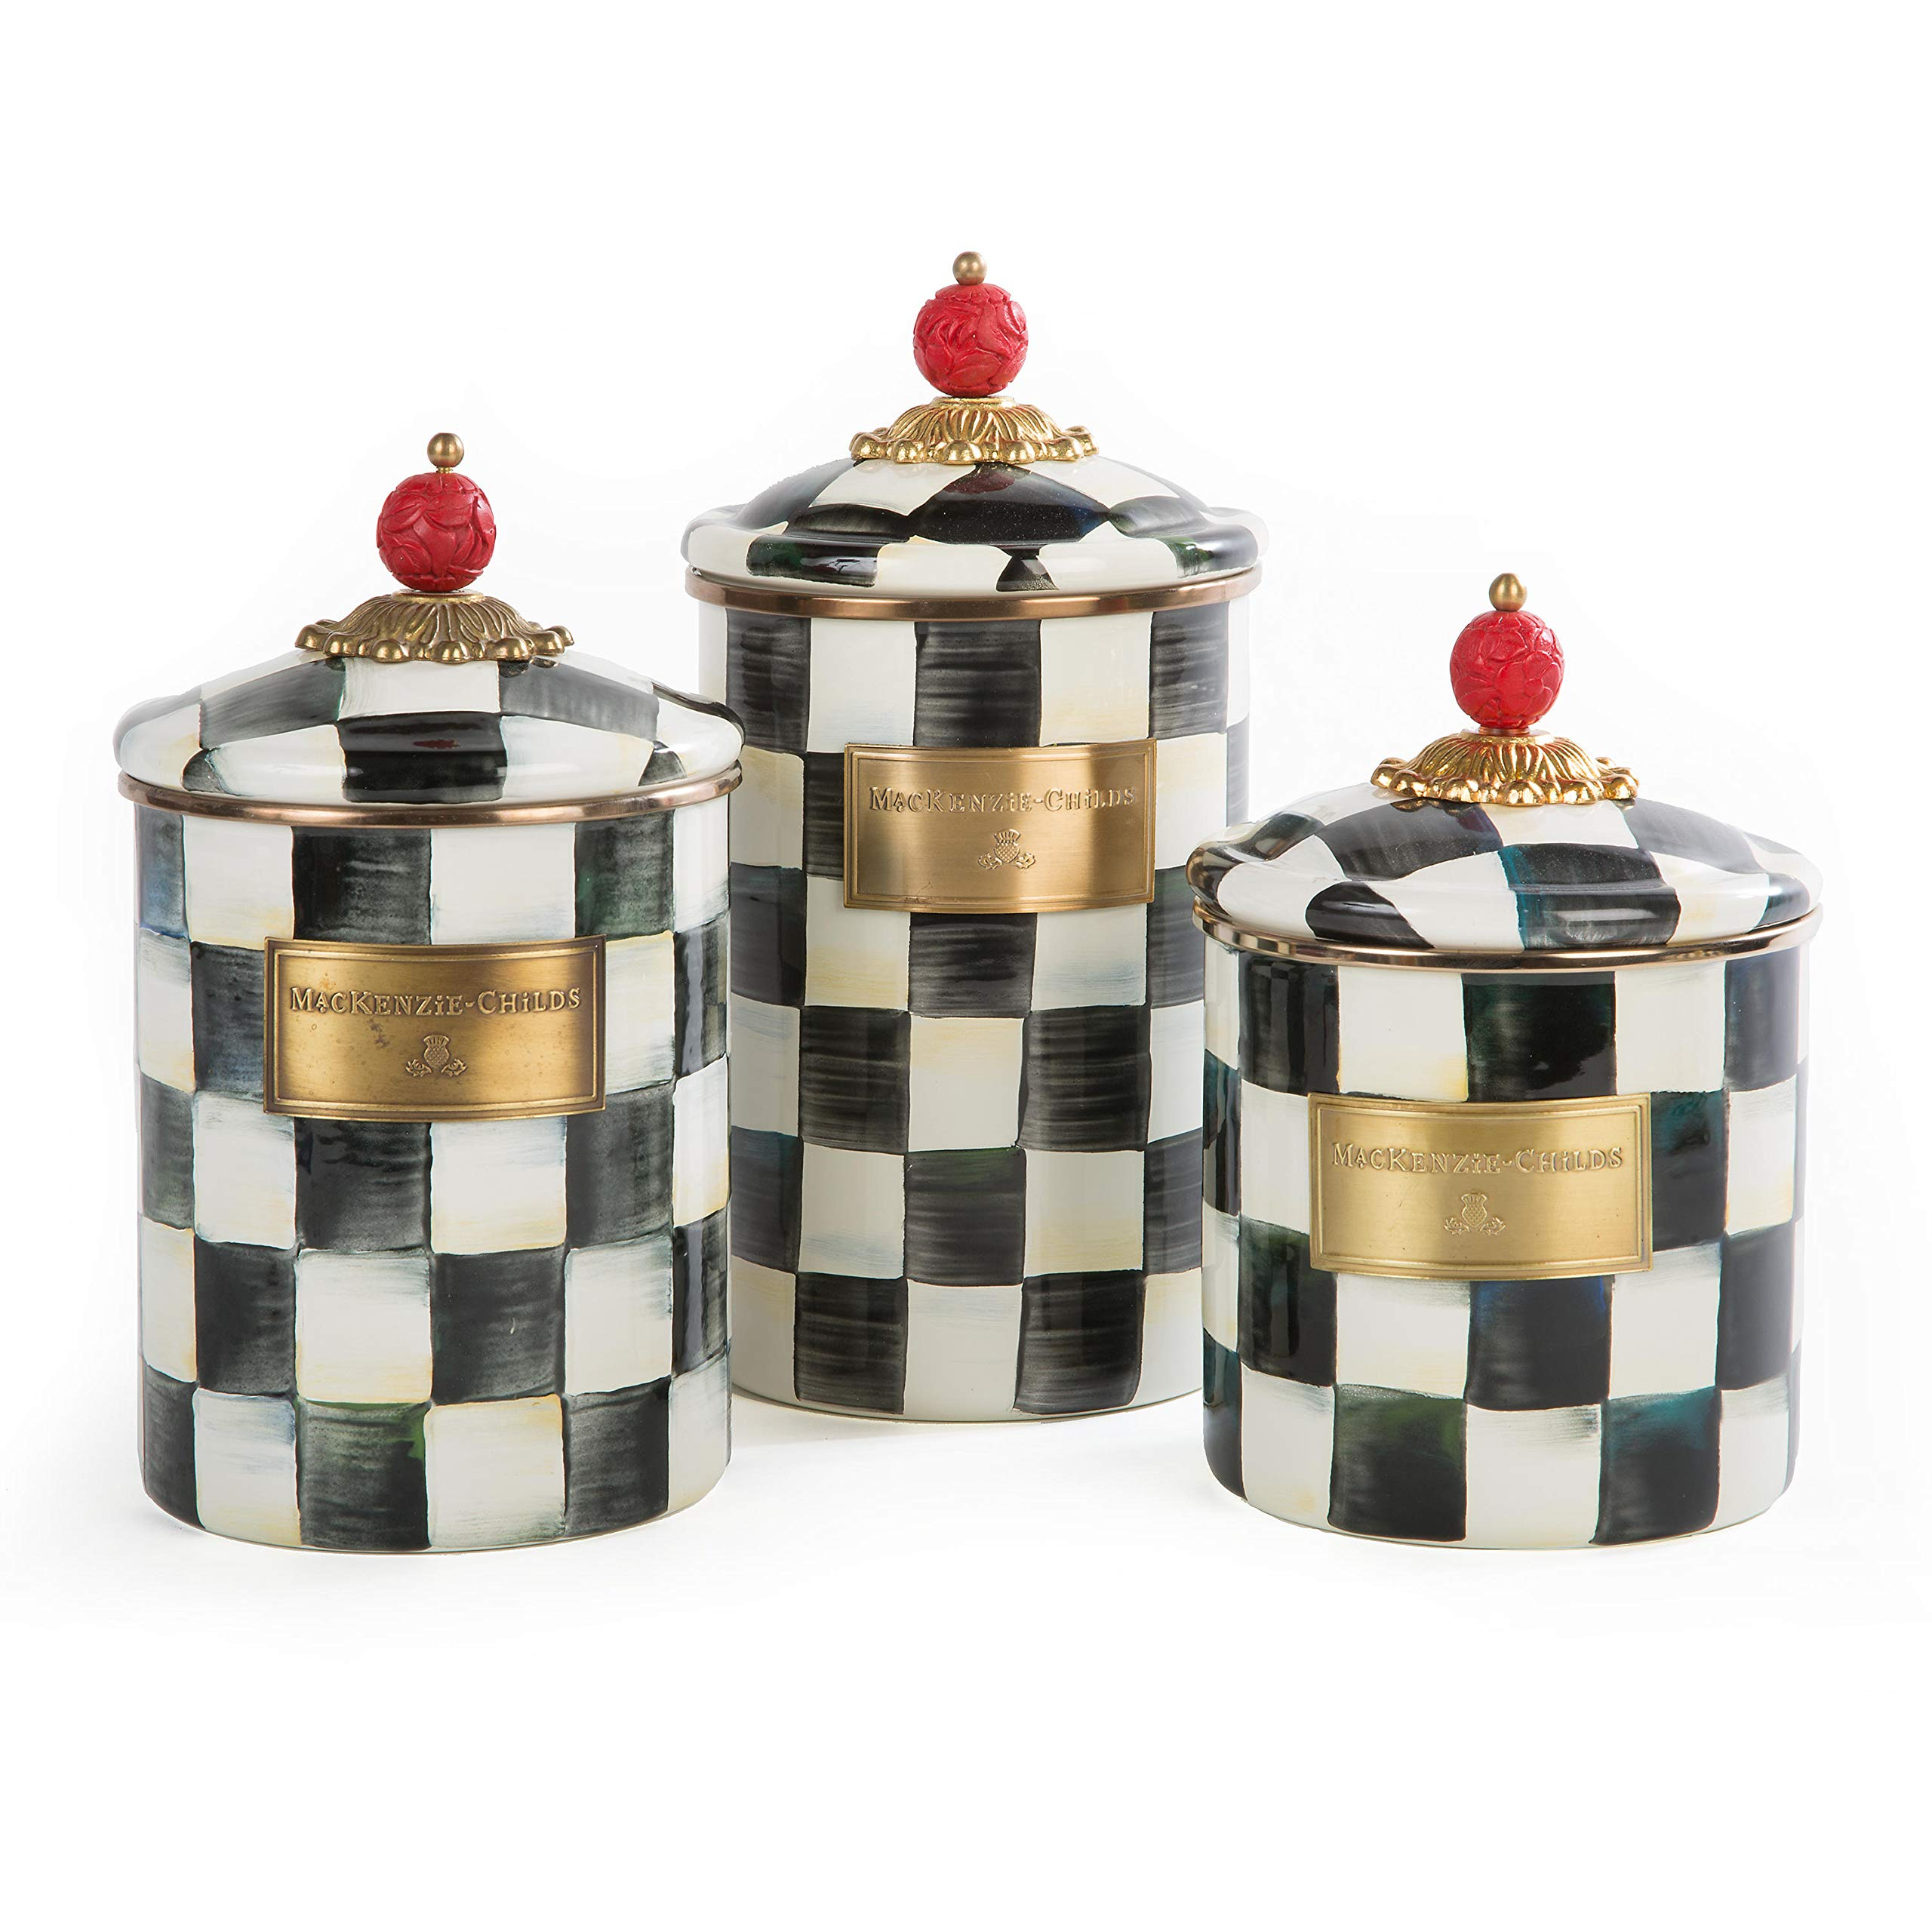 MacKenzie-Childs Courtly Check Enamel Canister - Large 5'' dia., 7'' tall